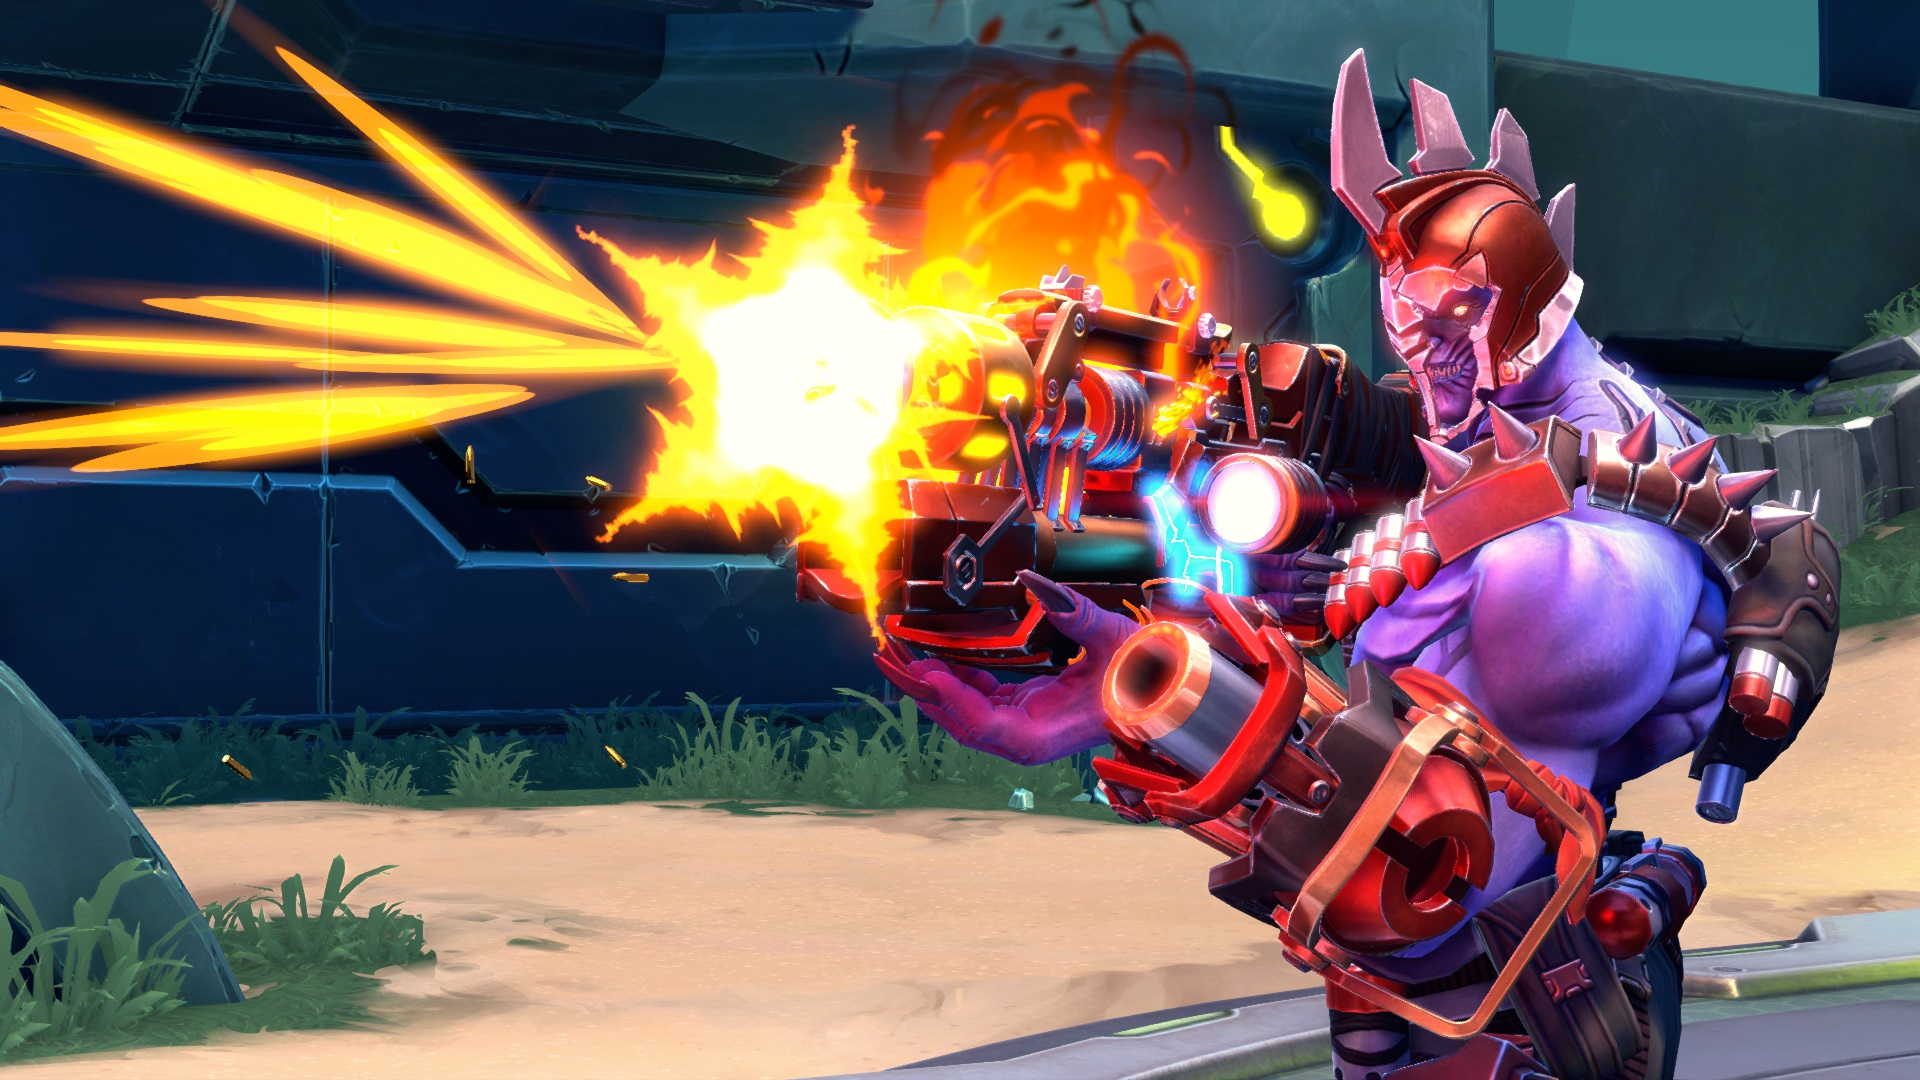 Battleborn Pc, Ps4 Game Review: GamePlay